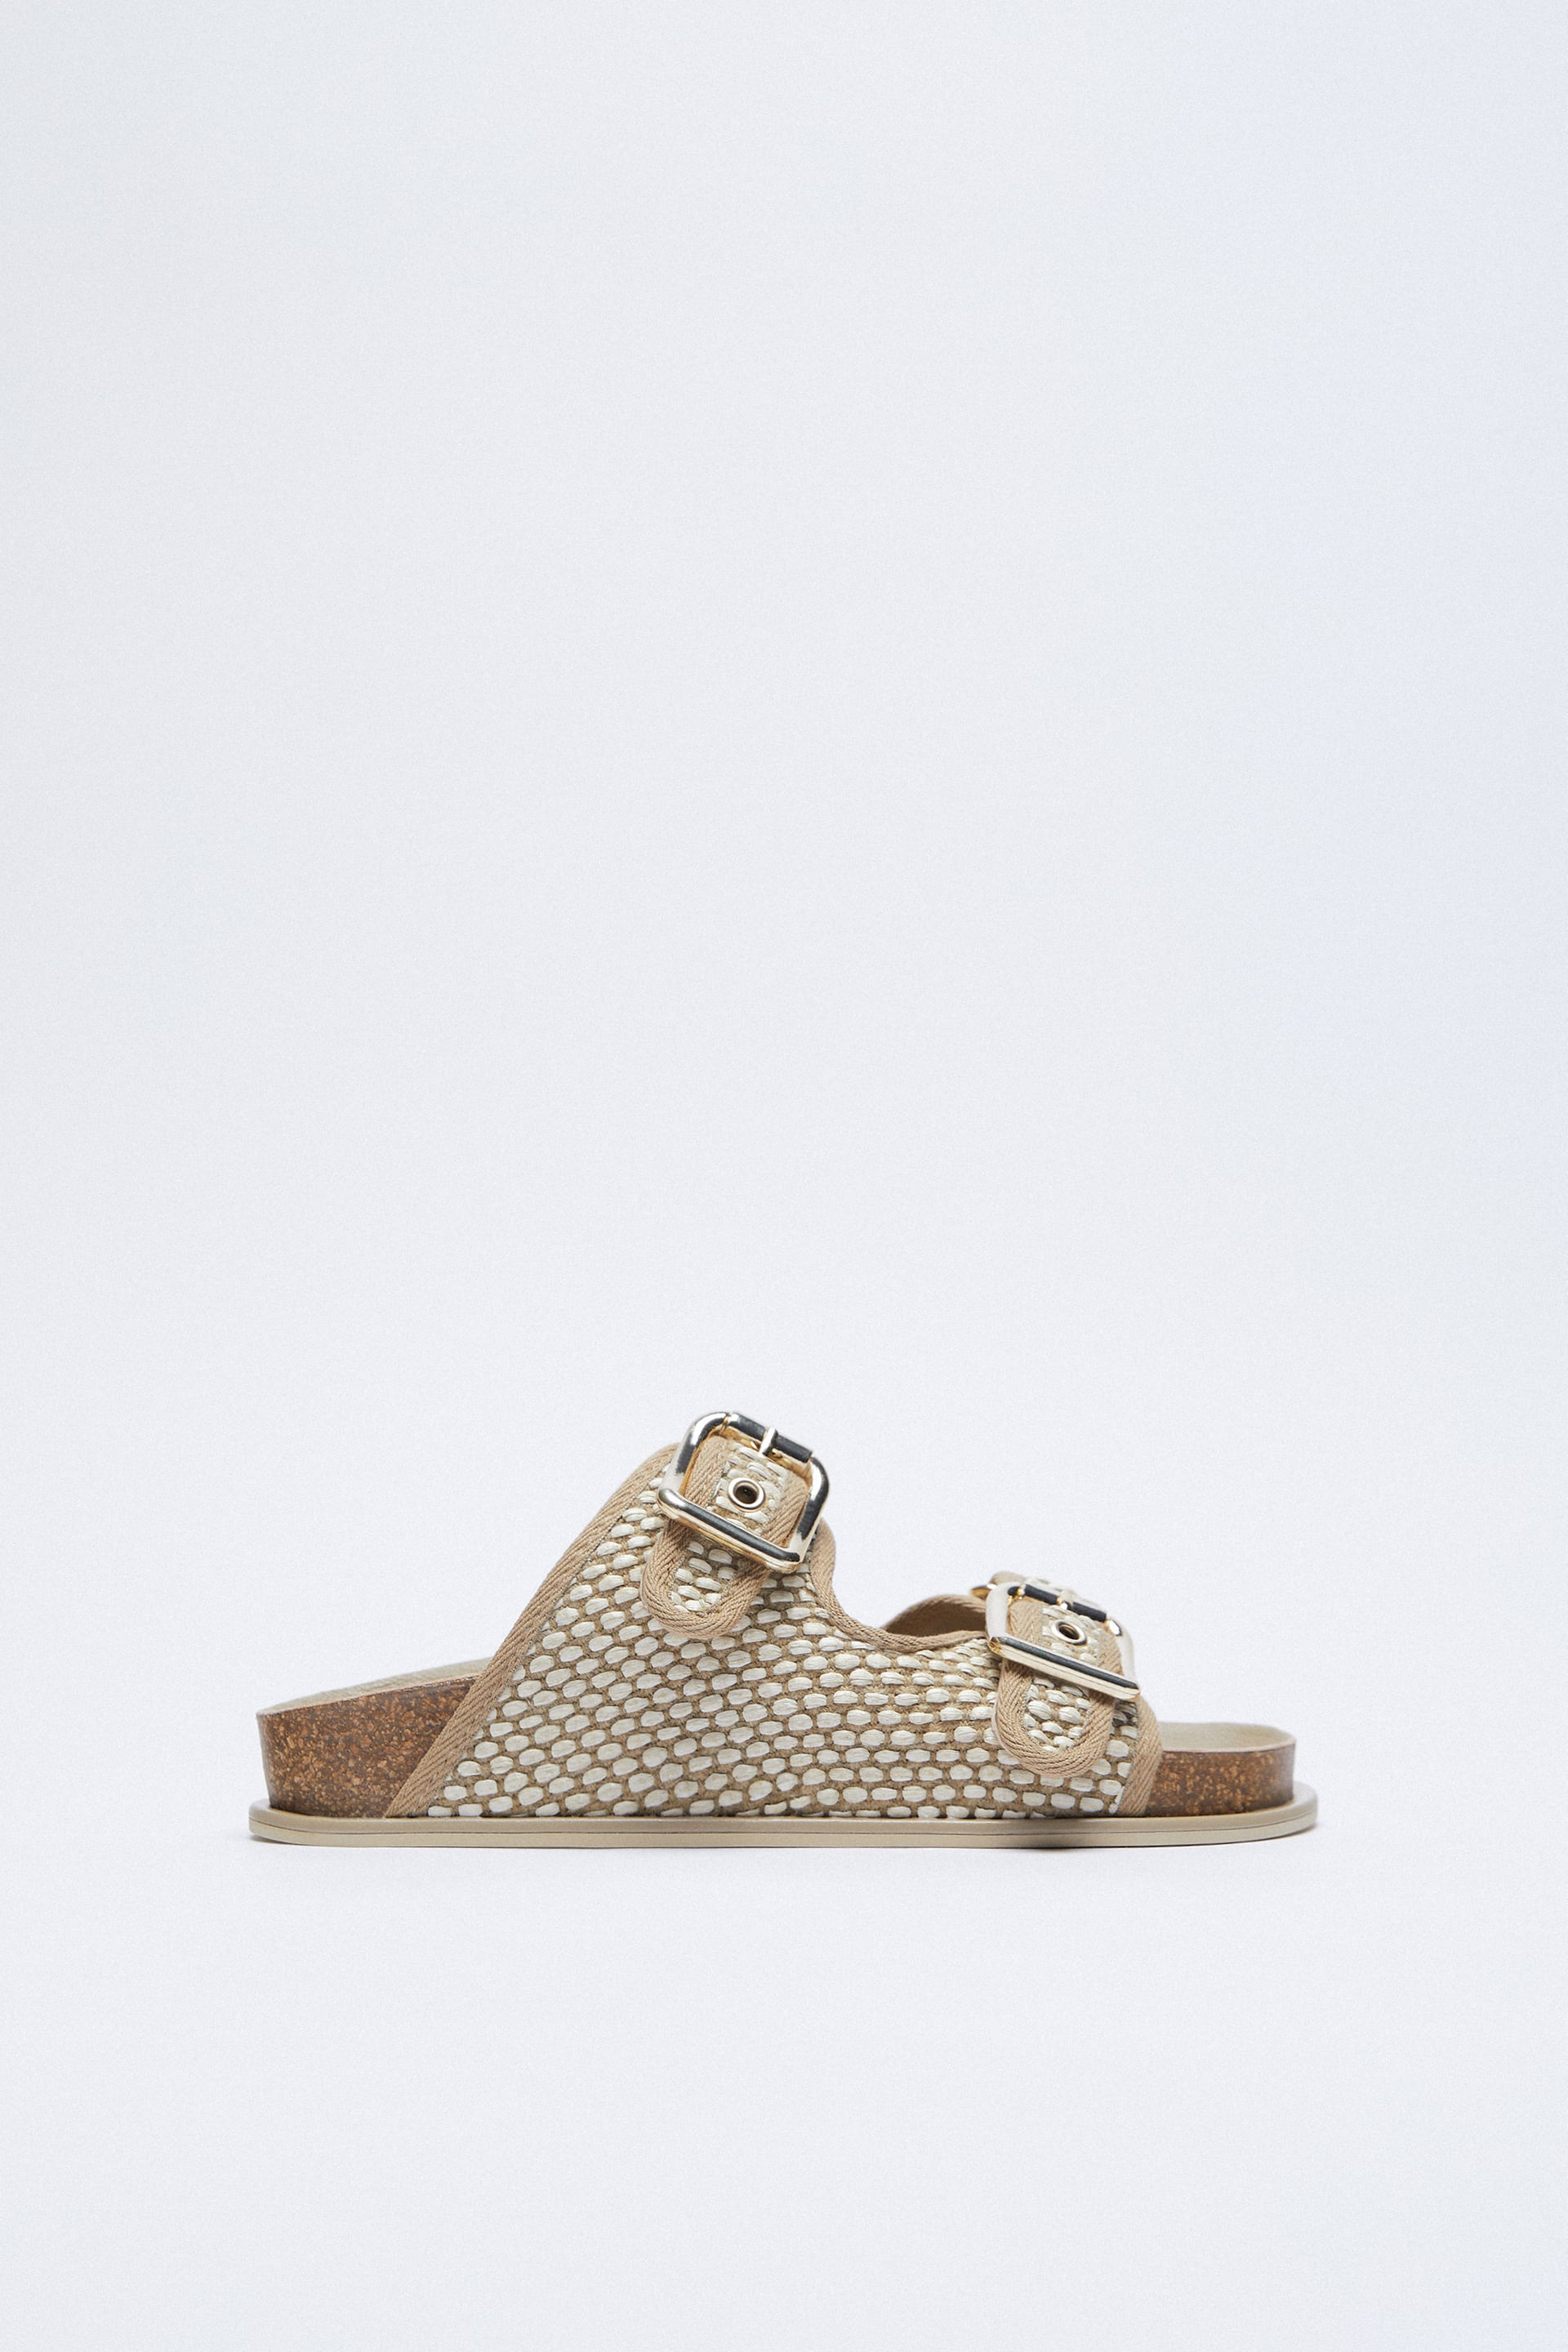 Details about  /Ladies Down To Earth Padded Footbed Elasticated Pull On Textile Sandals F1R0406